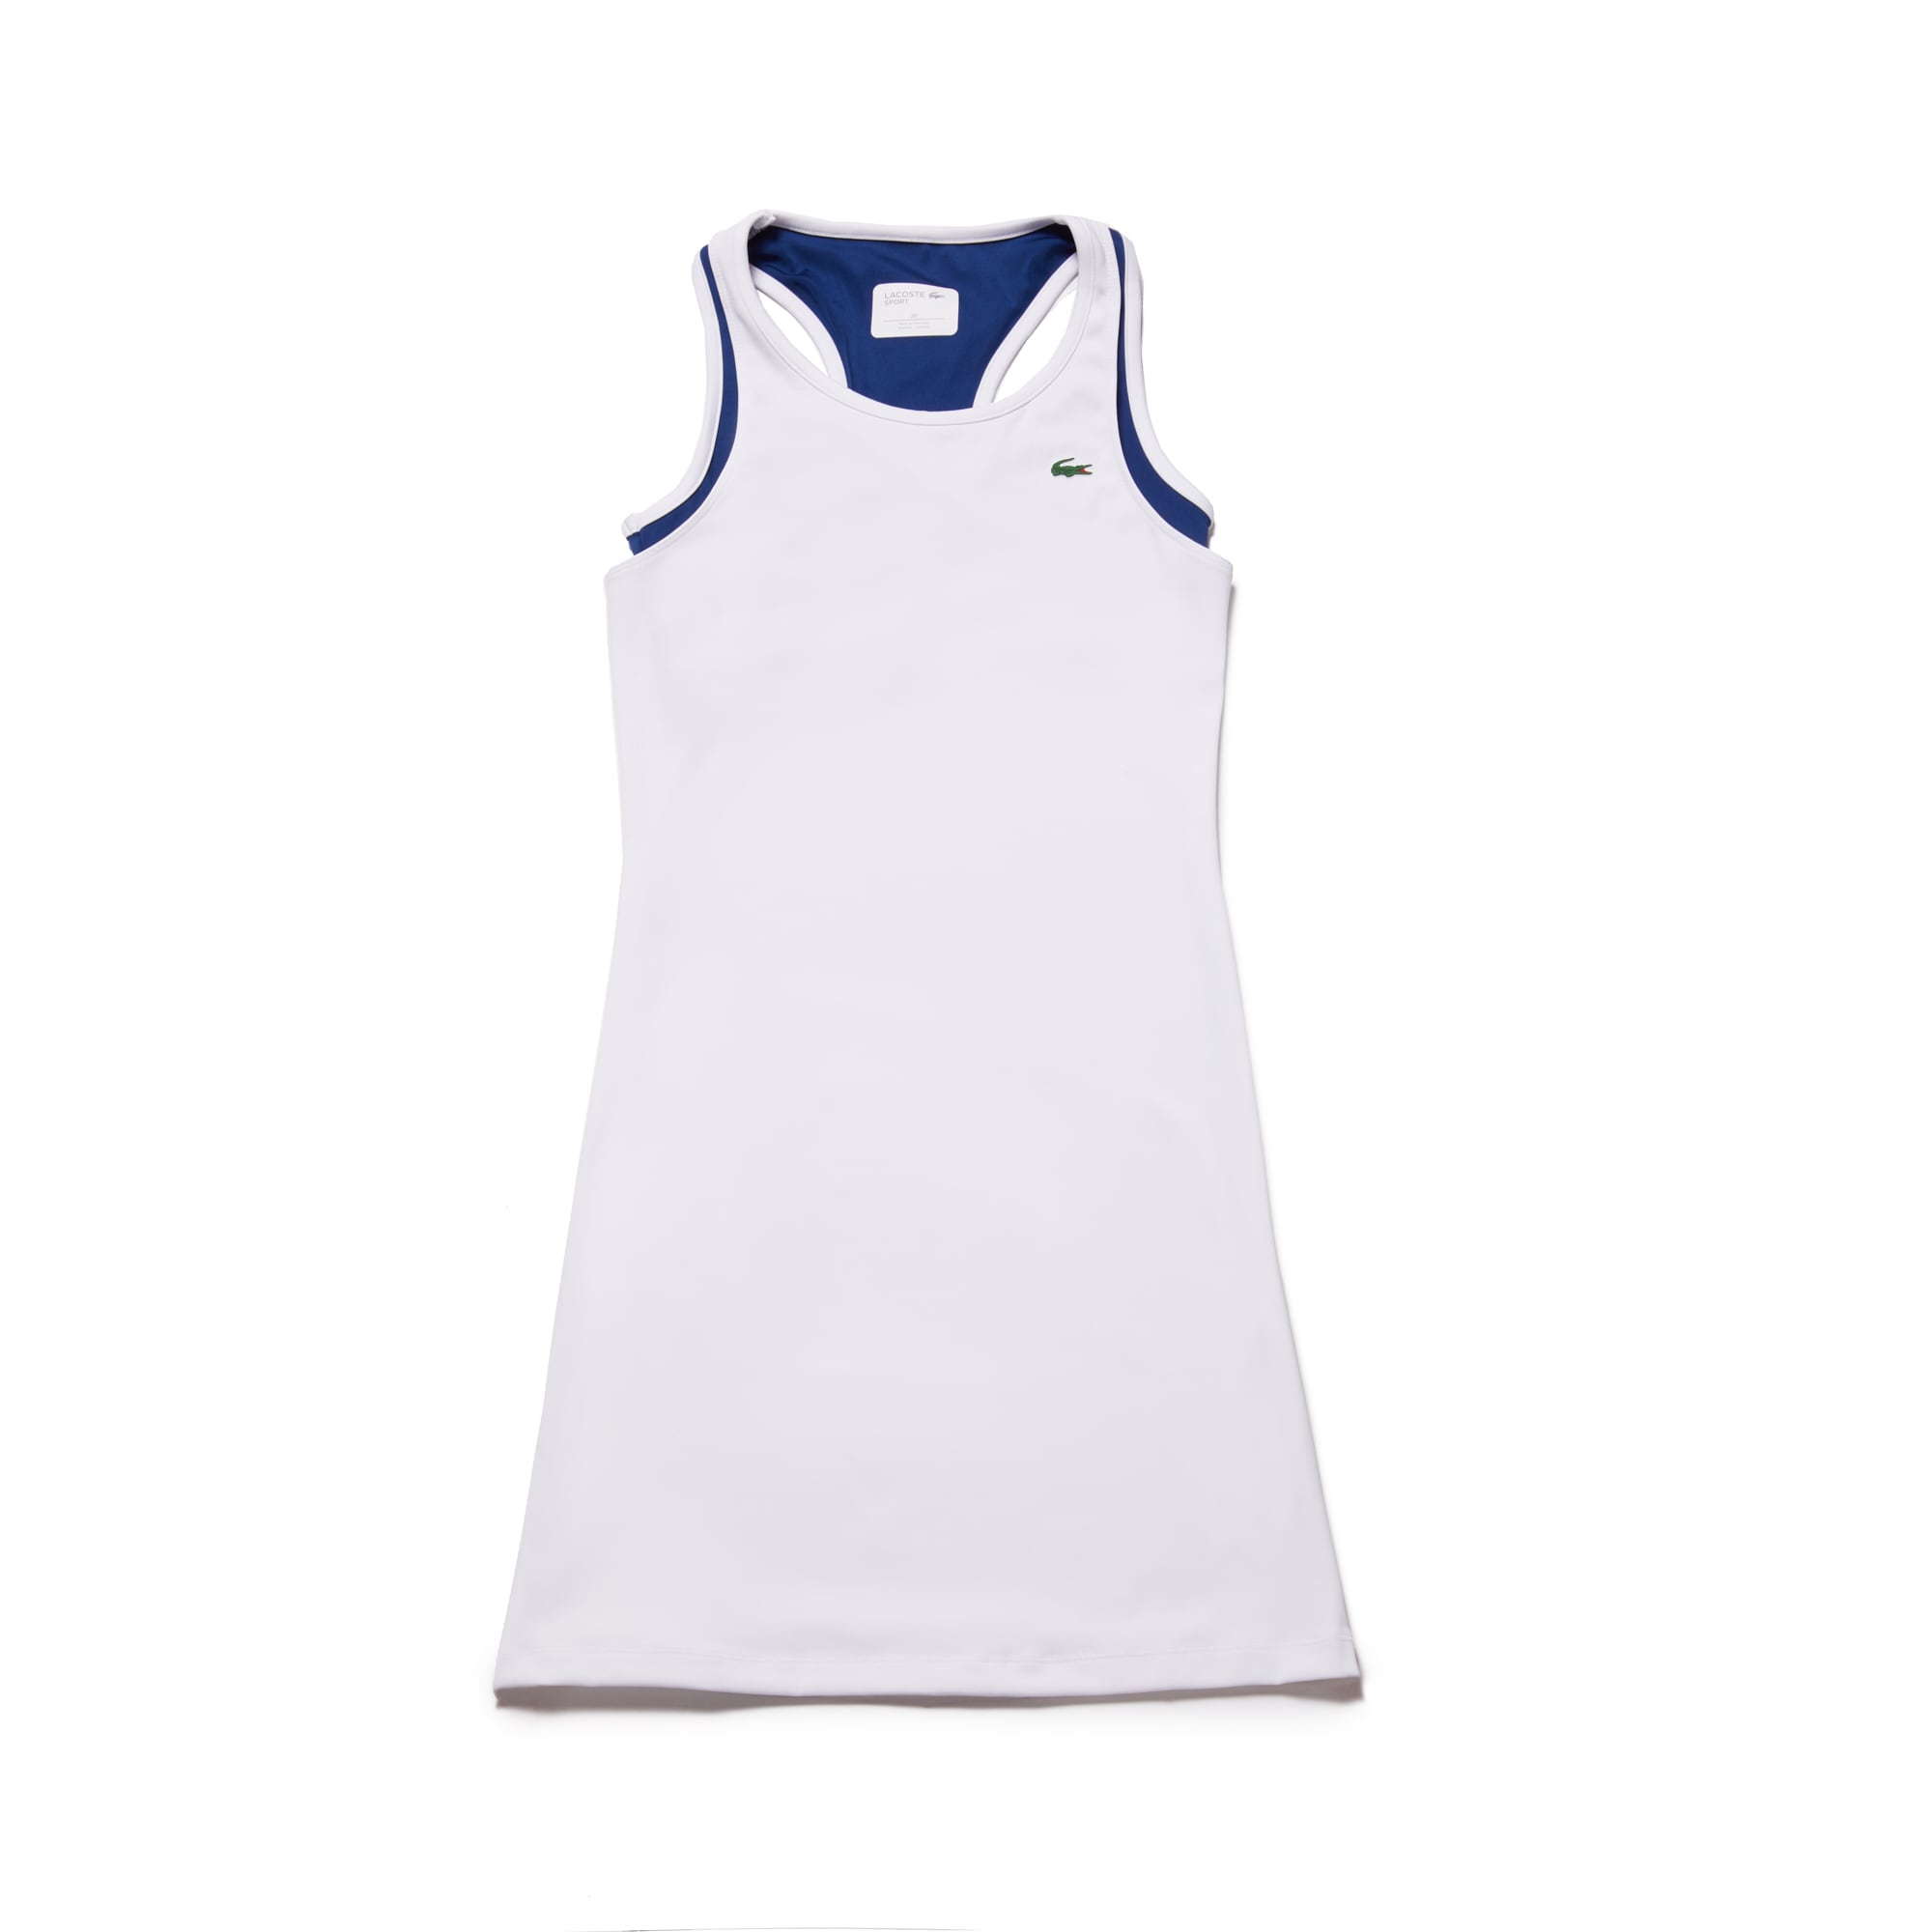 Women's SPORT Technical Jersey Racerback Tennis Dress